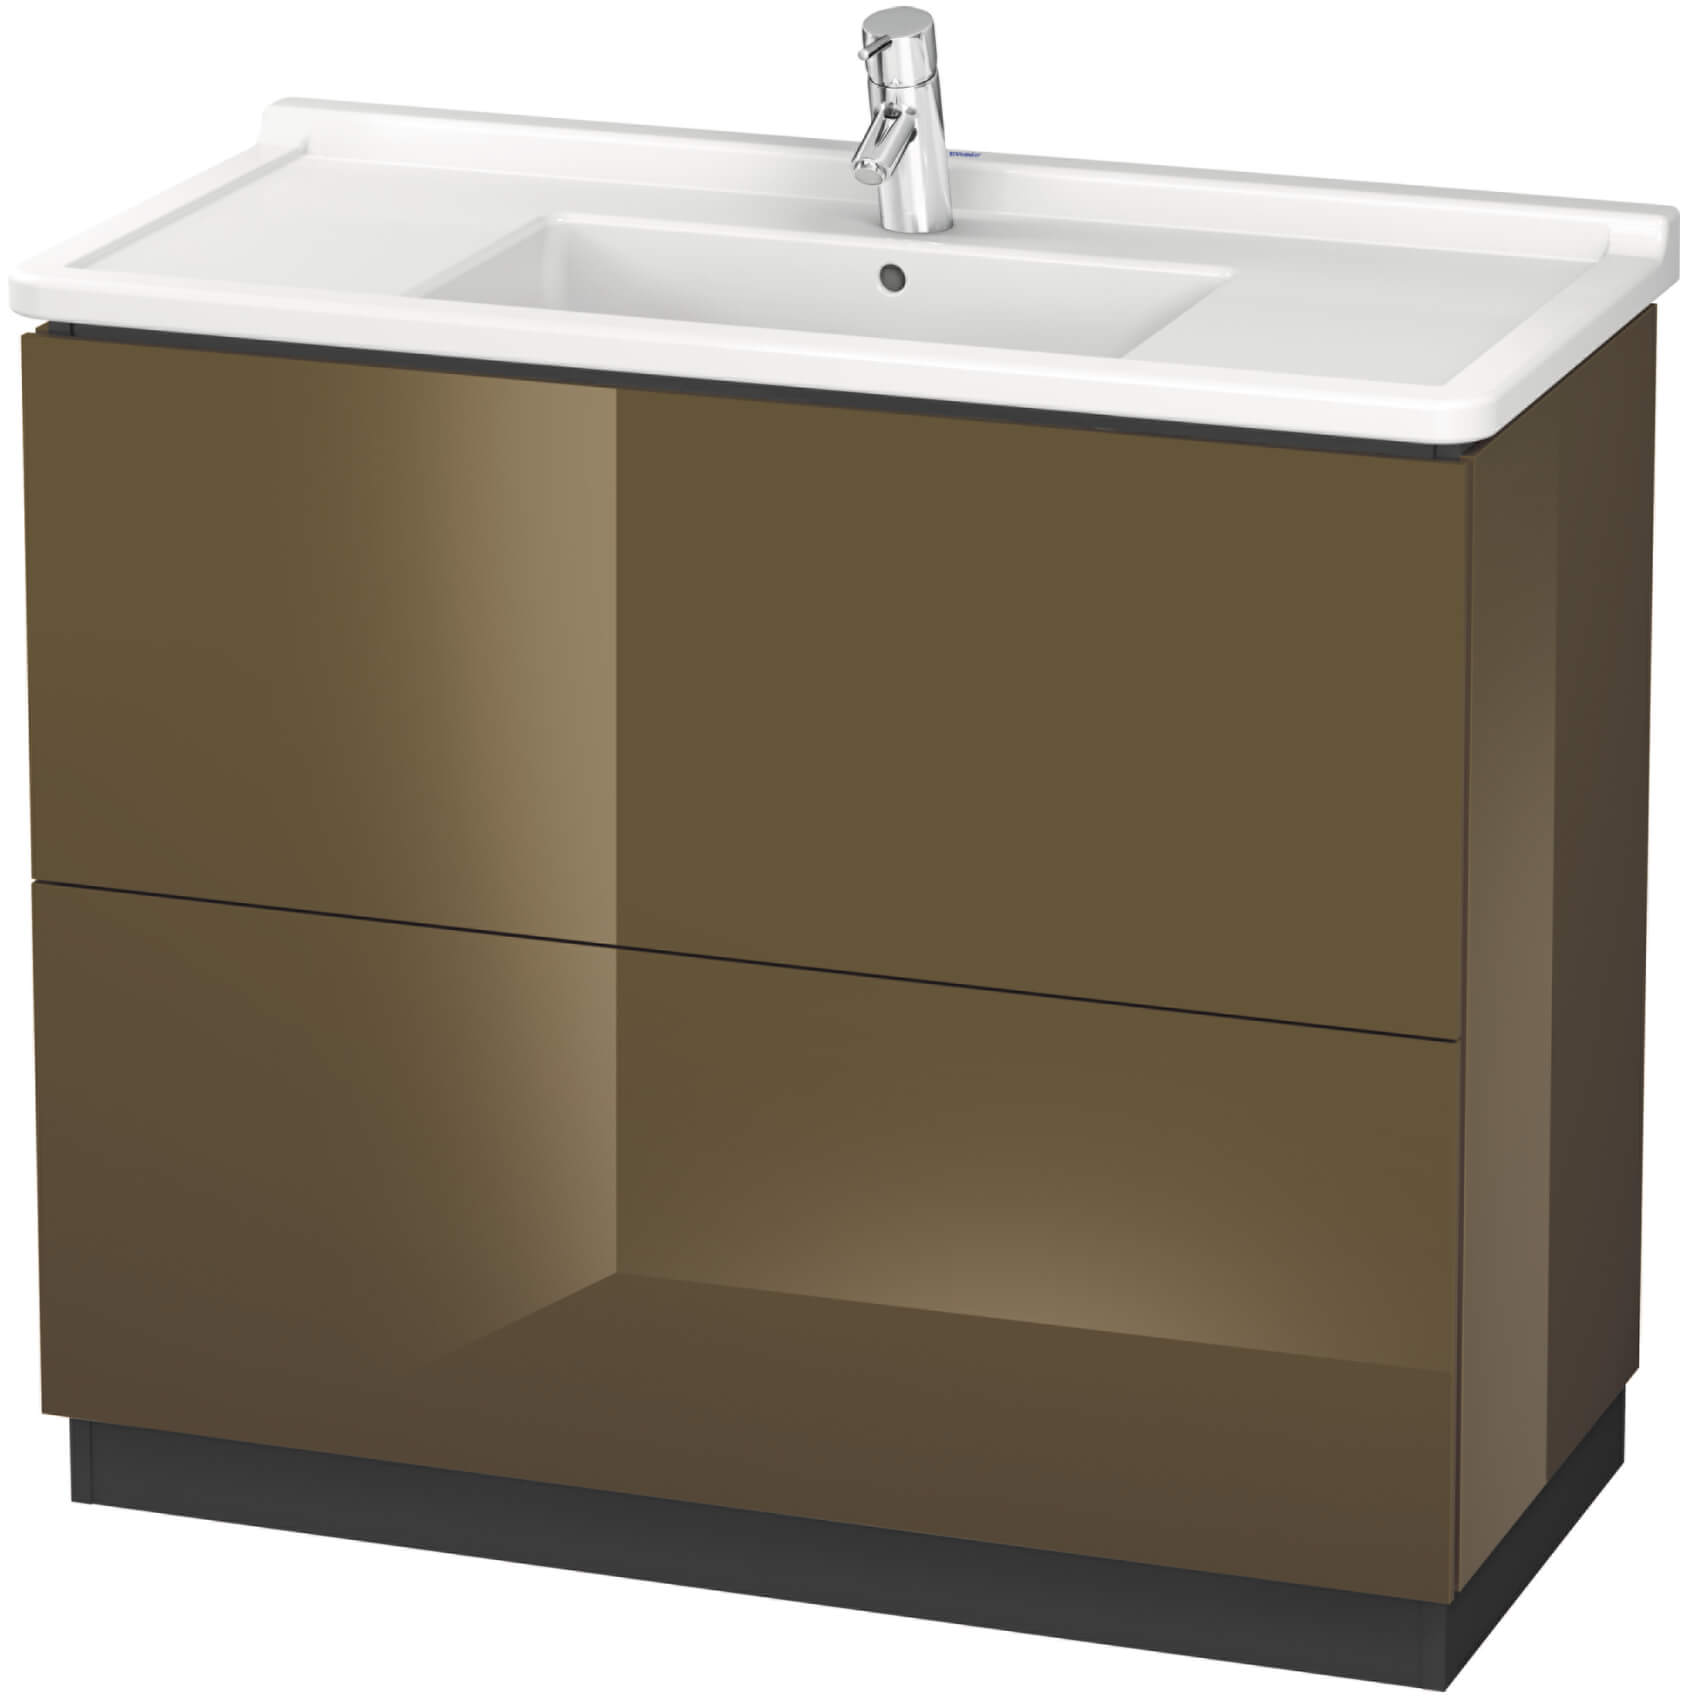 duravit l cube 1020 x 864mm floor standing vanity unit with starck 3 basin. Black Bedroom Furniture Sets. Home Design Ideas